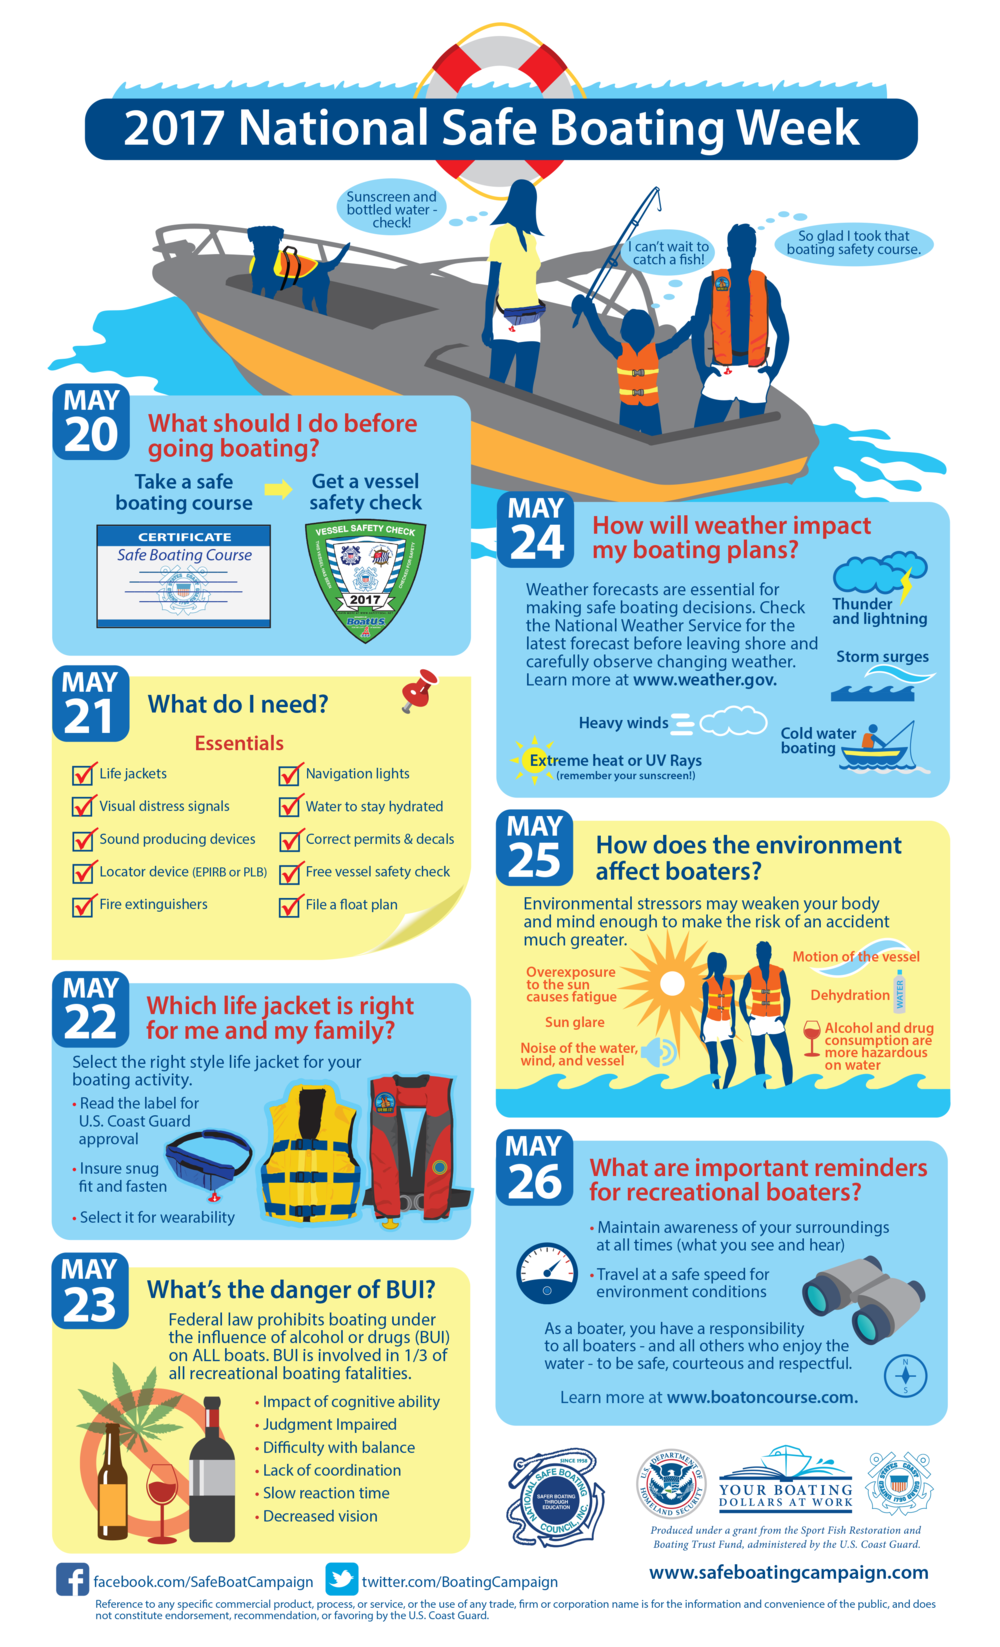 2017-National-Safe-Boating-Week-infographic (1).png